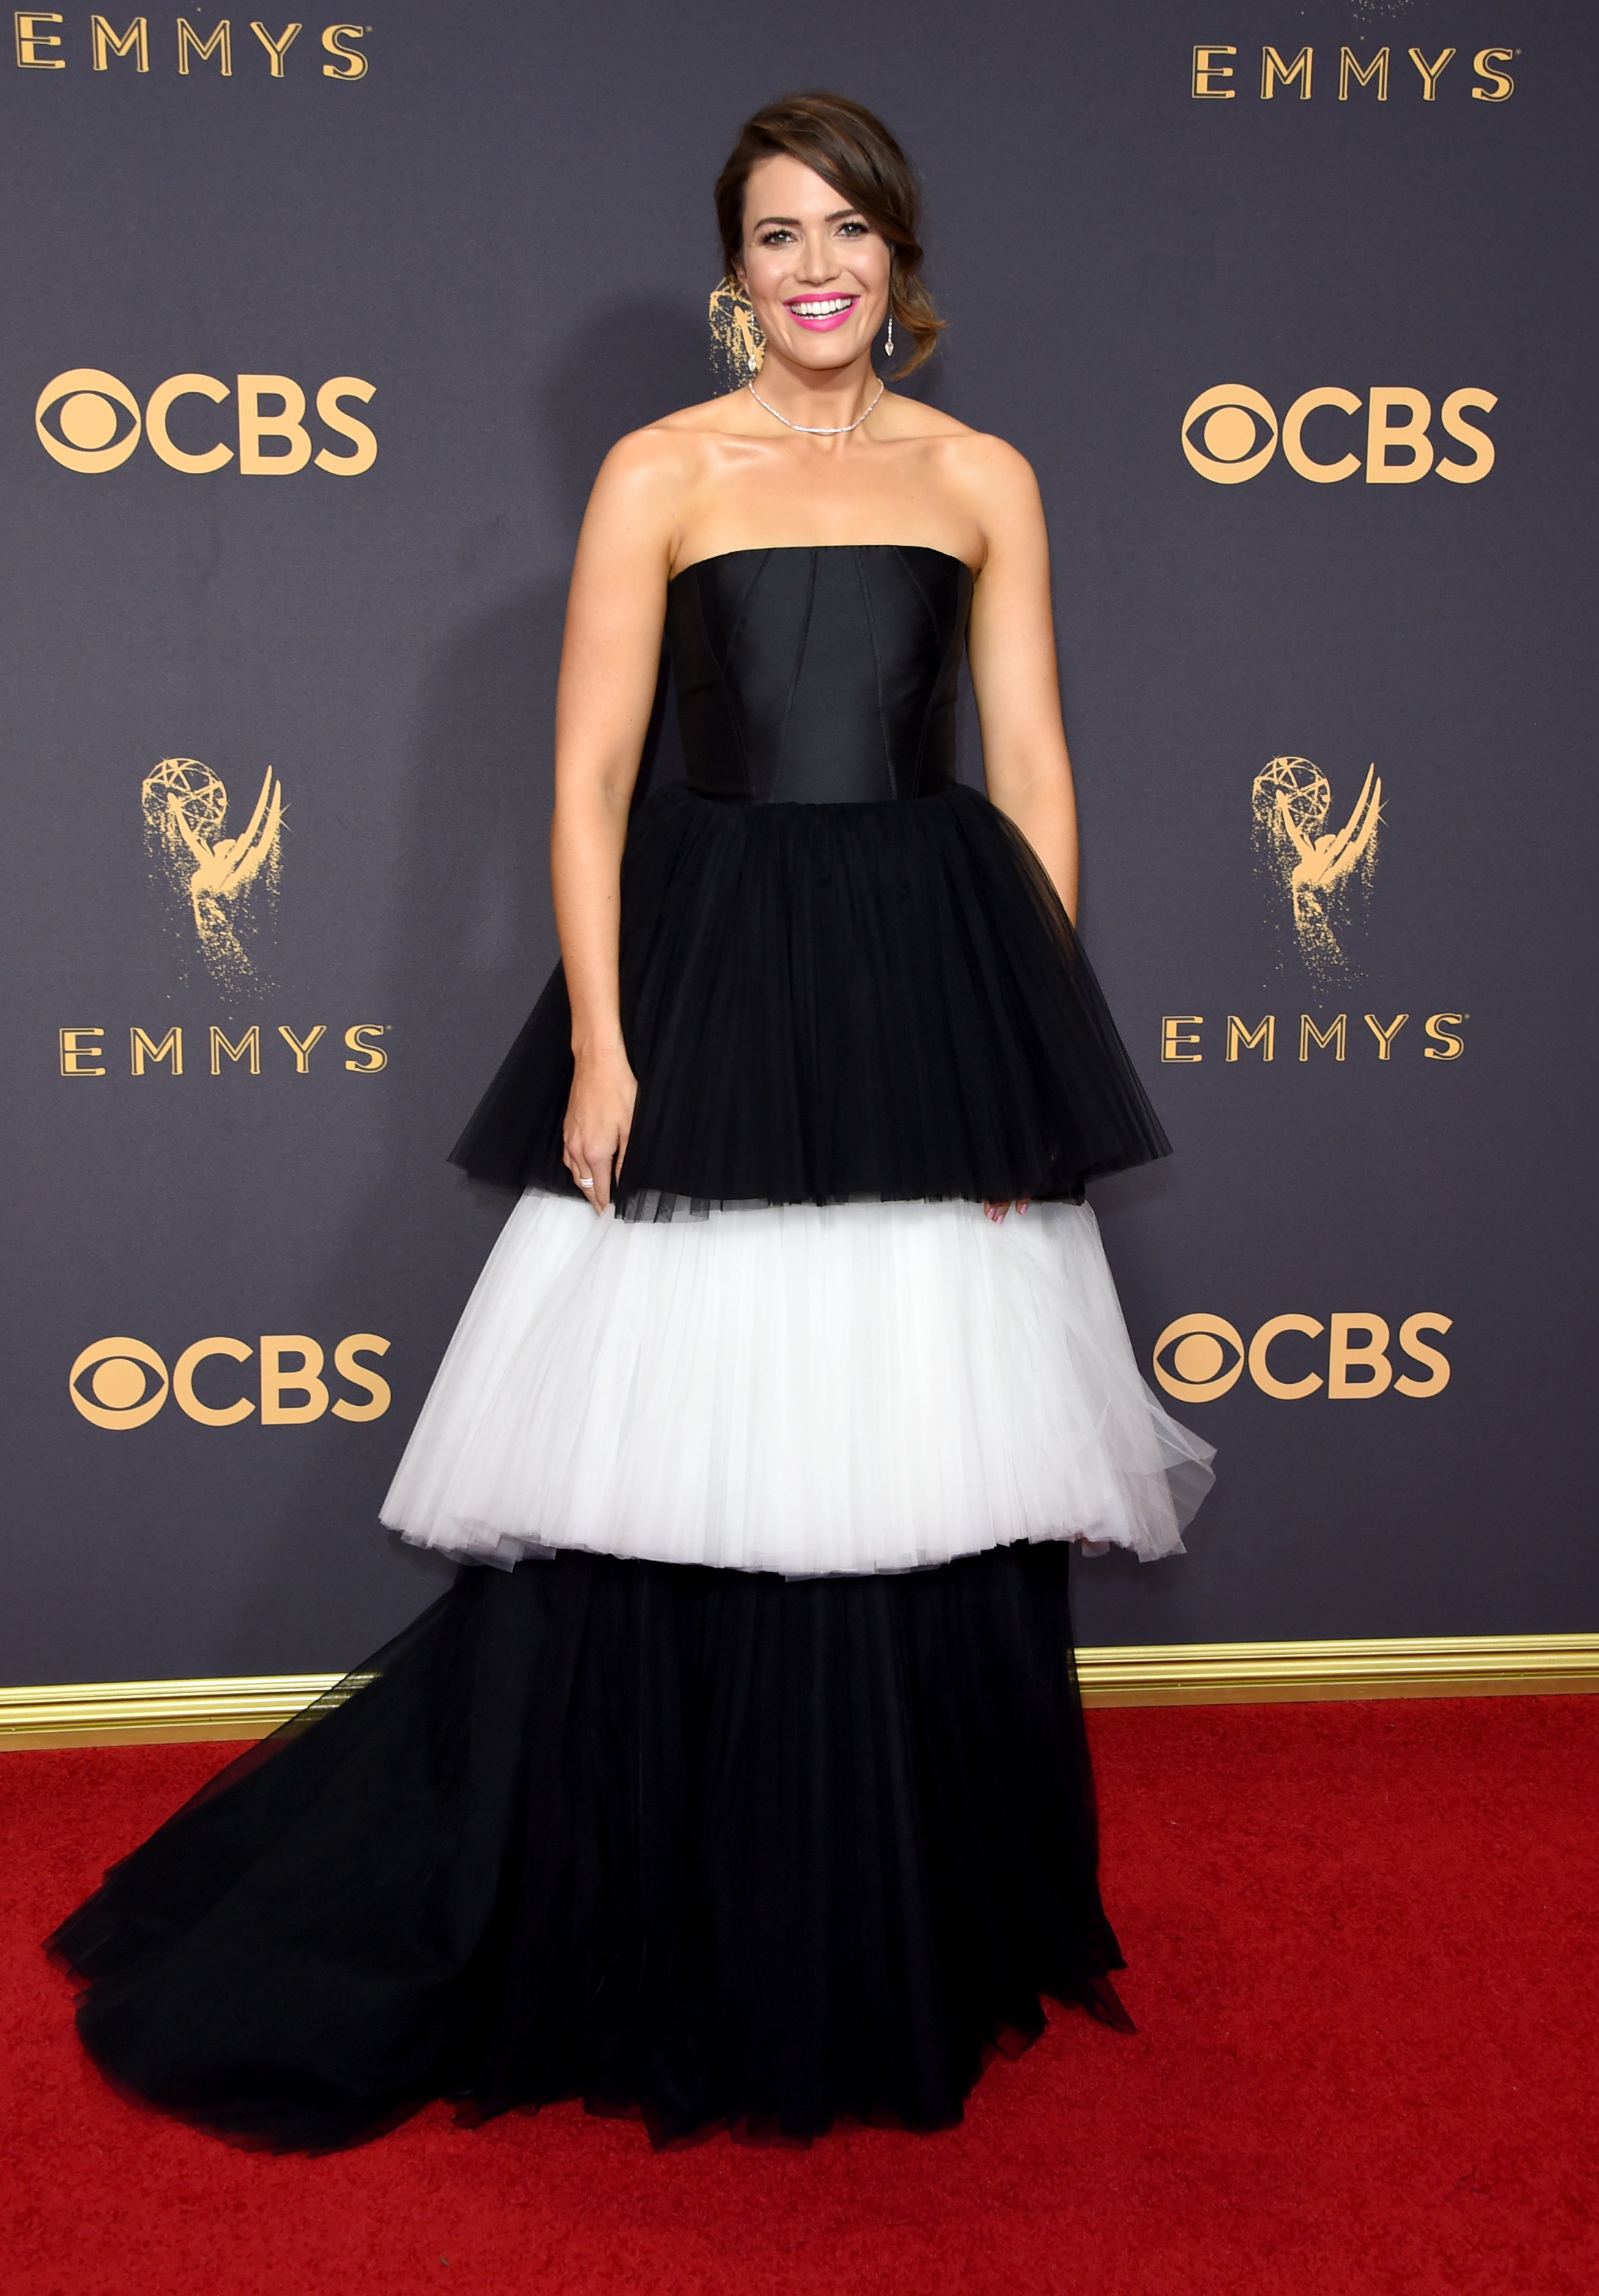 Mandy Moore Emmys Red Carpet 2017